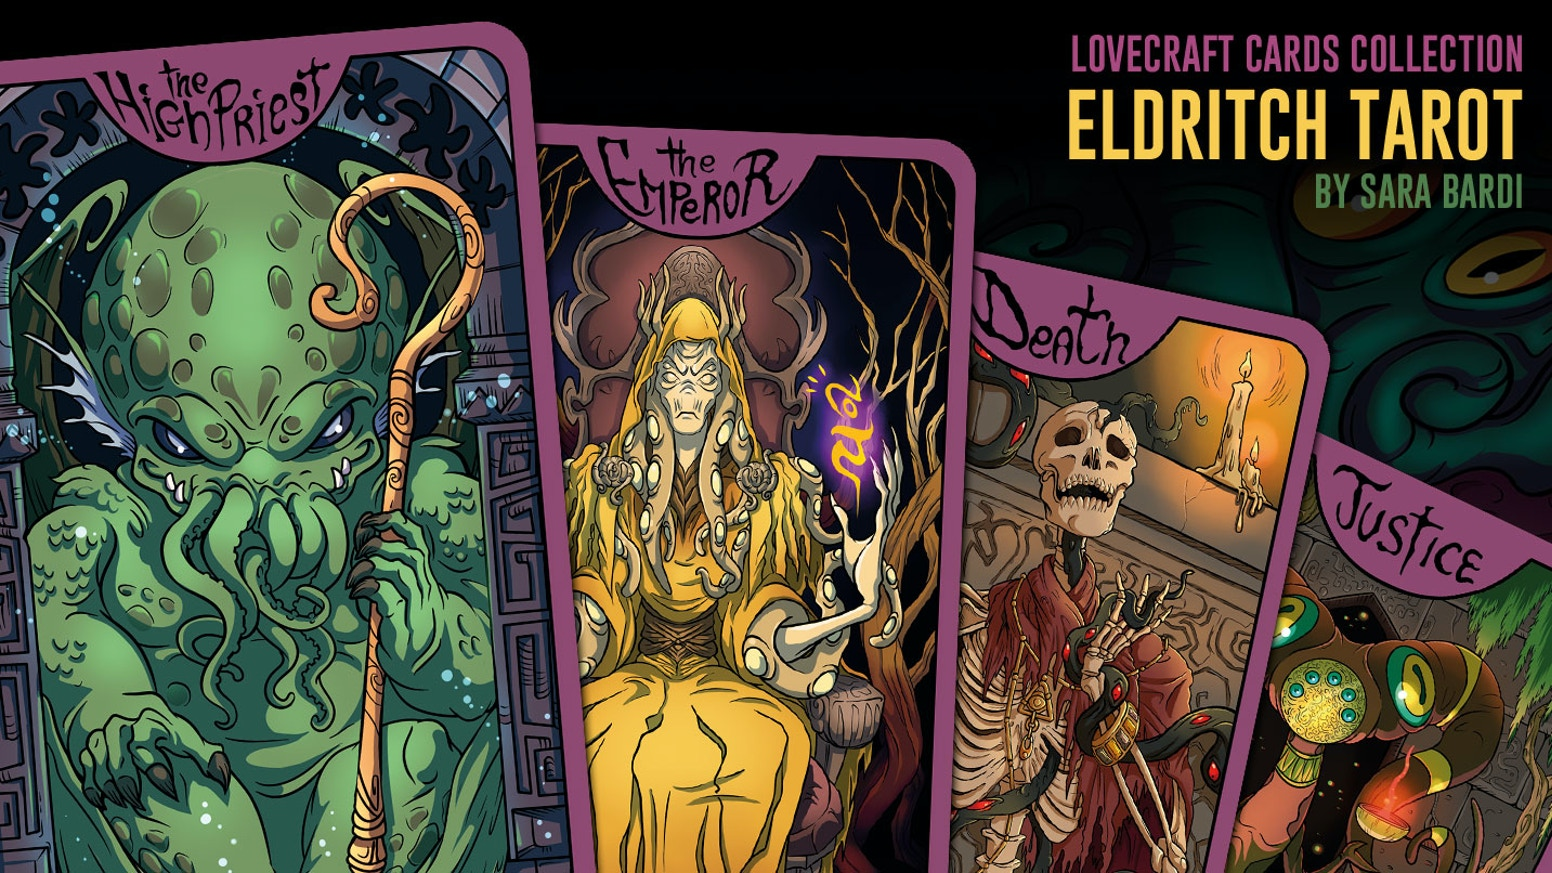 Major Arcana Tarot cards inspired by Lovecraft with the amazing art of Sara Bardi, and the new Cthulhu cult statuette for collectors.